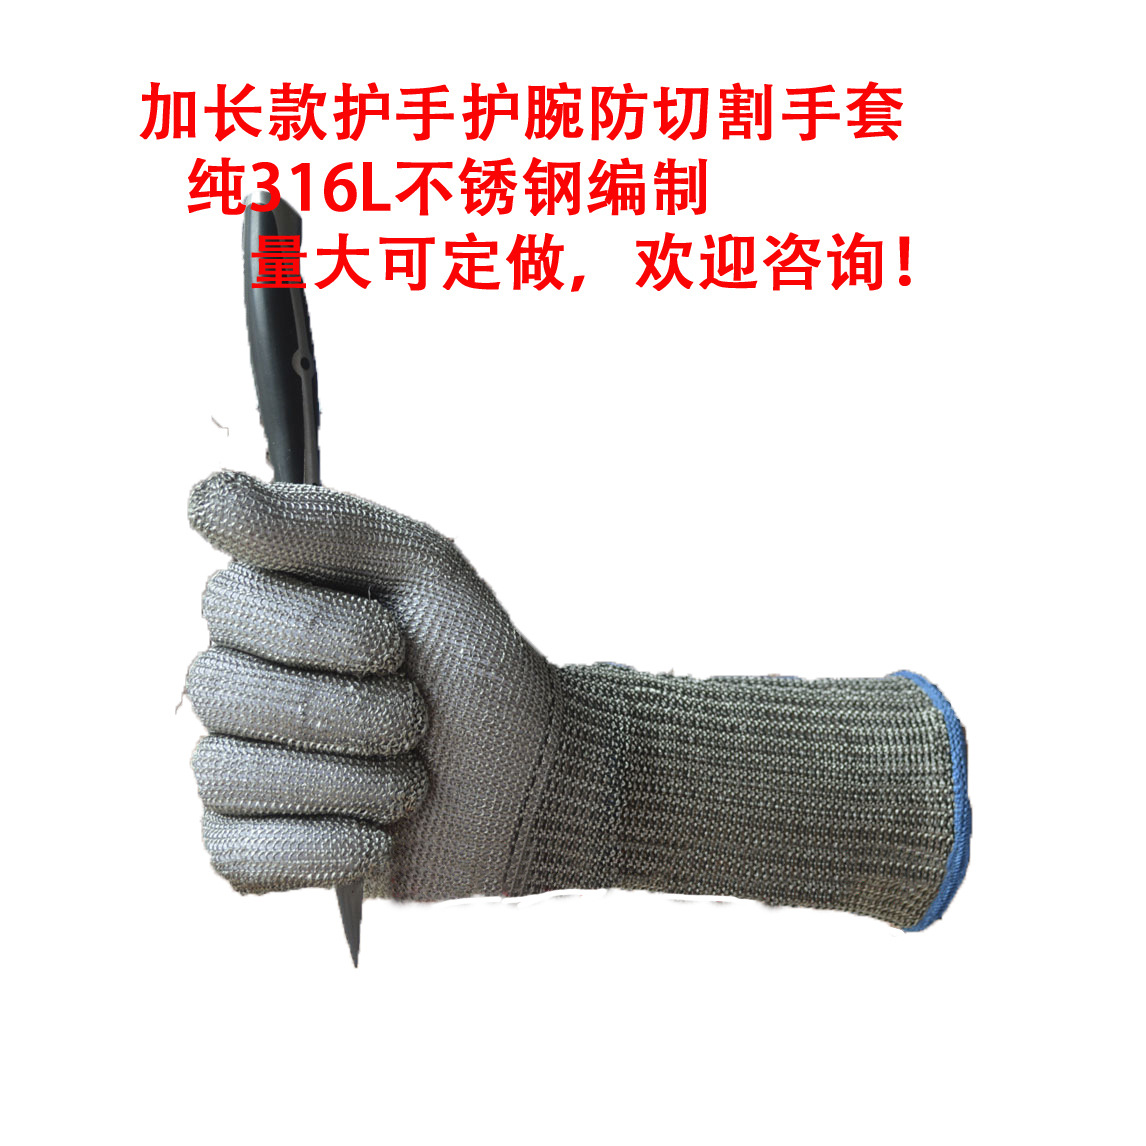 Stainless steel wire cuff longer section Gloves labor insurance protective metal iron cut-resistant gloves disposable gloves blue latex gloves check protective work gloves labor insurance rubber gloves free shipping